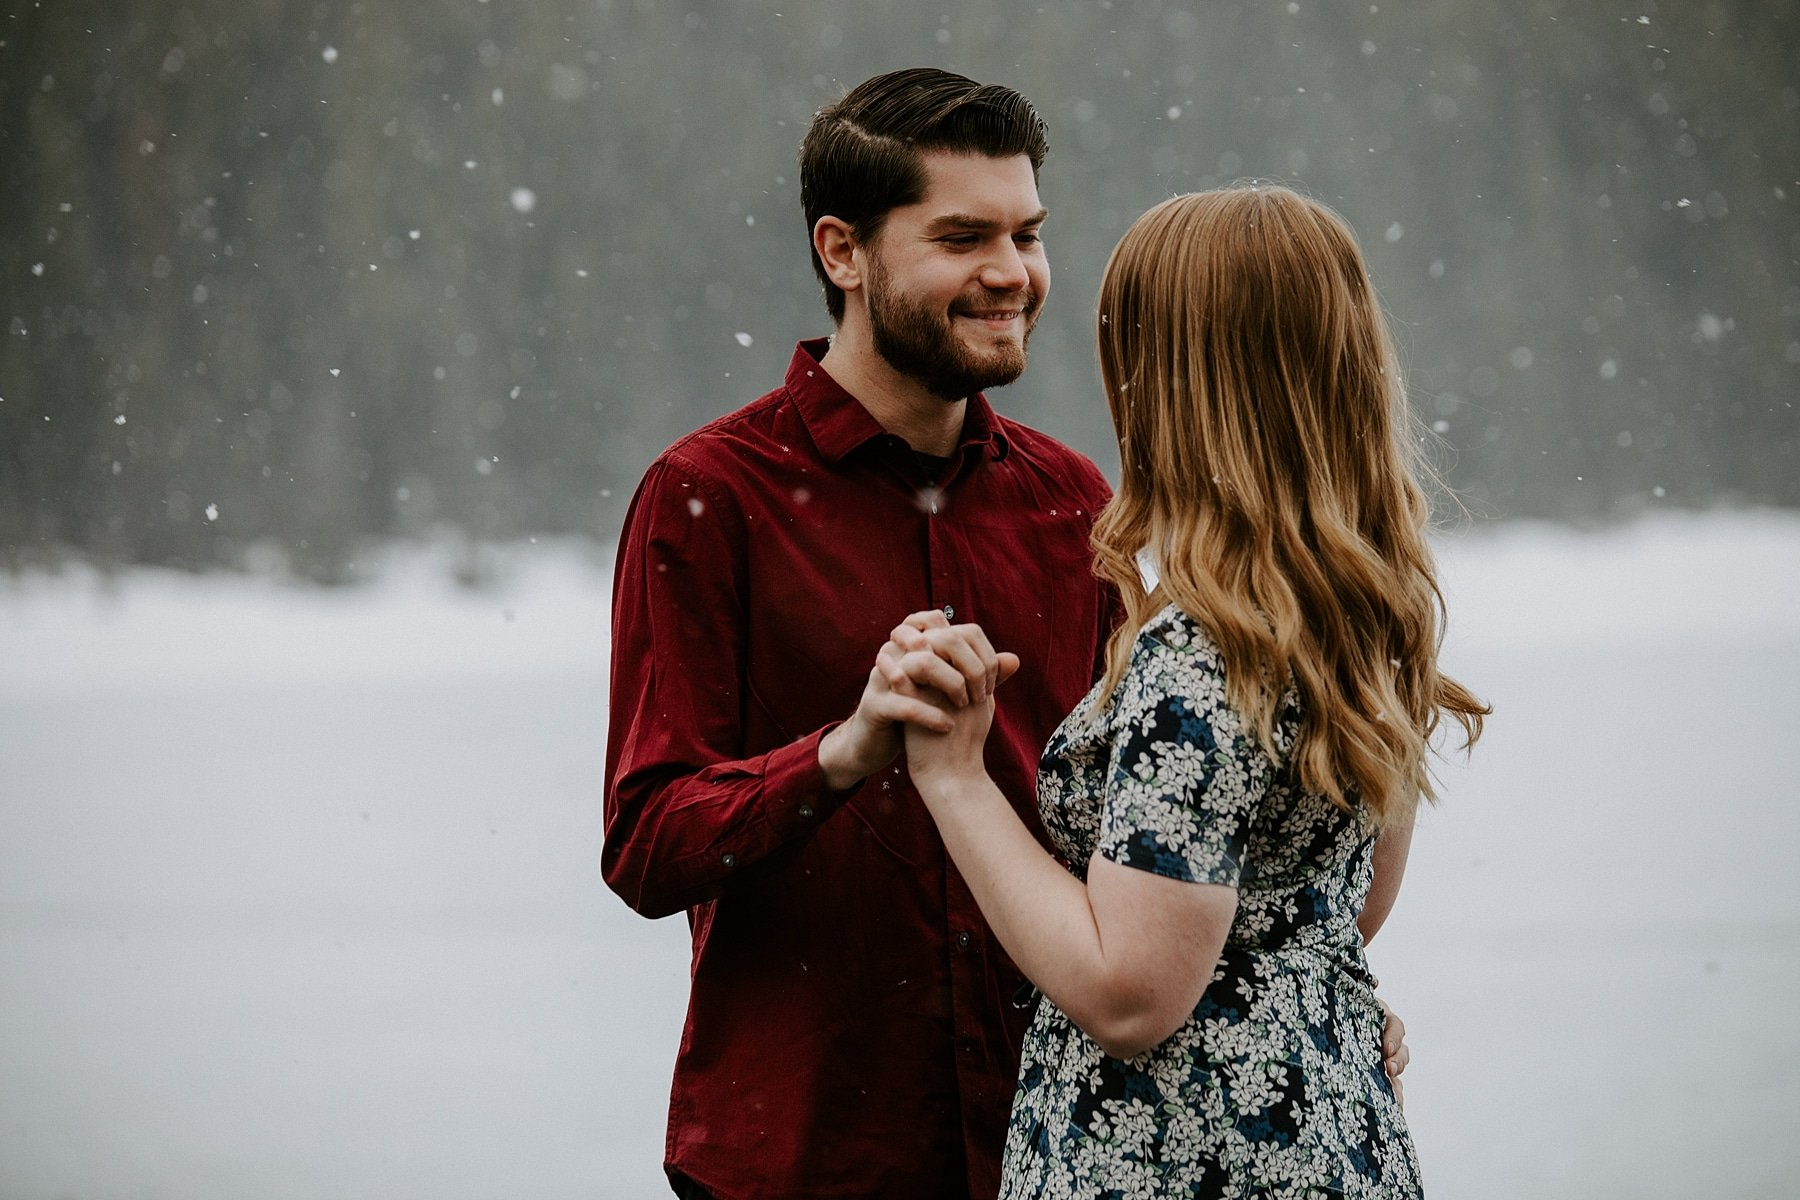 Engaged couple dancing in the snow